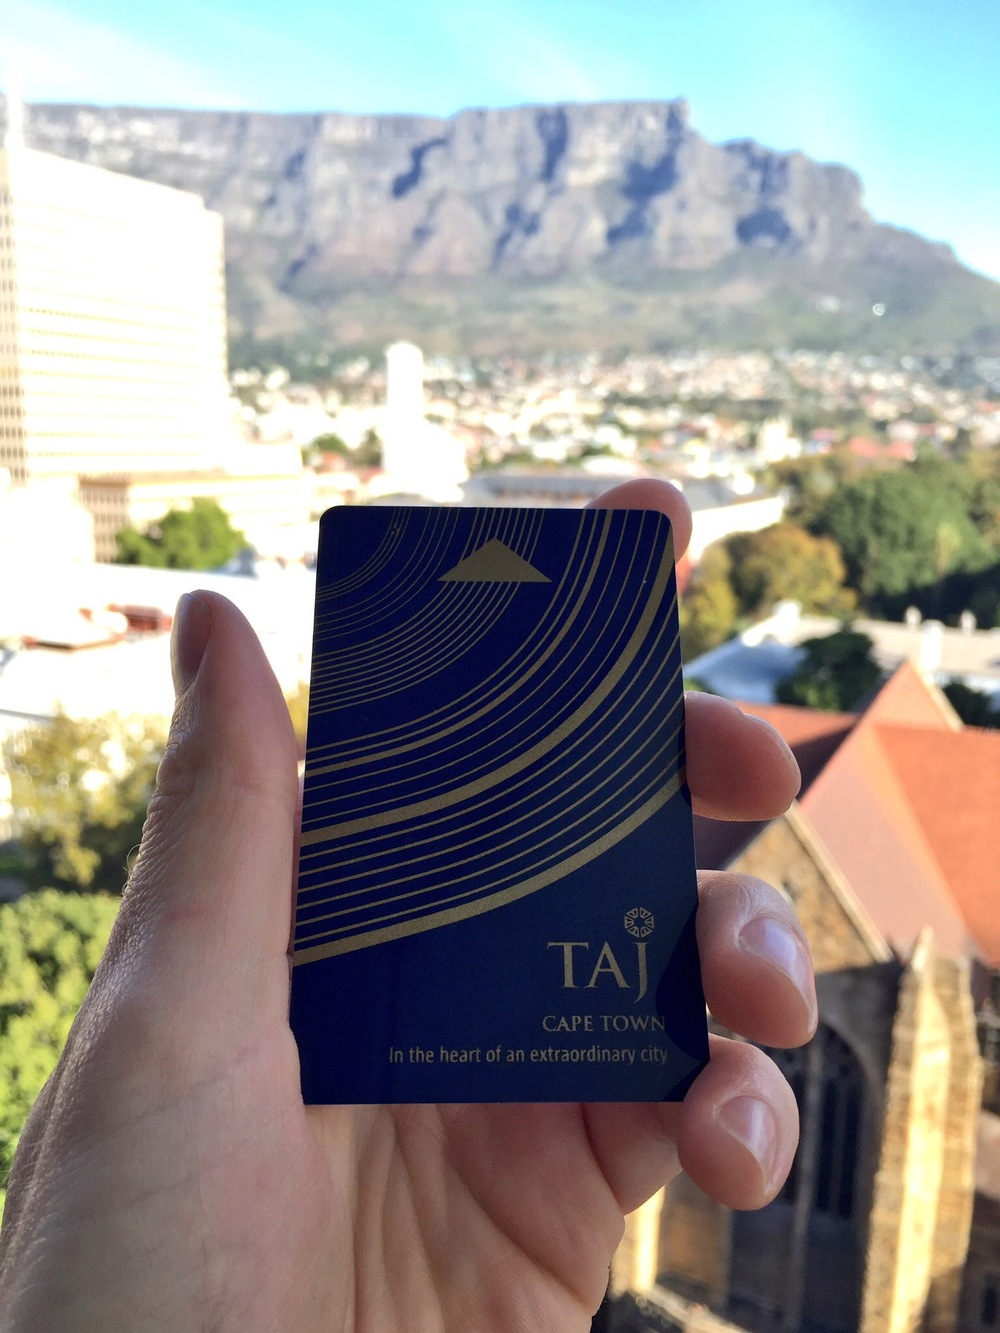 Taj is located in the historic centre of Cape Town.